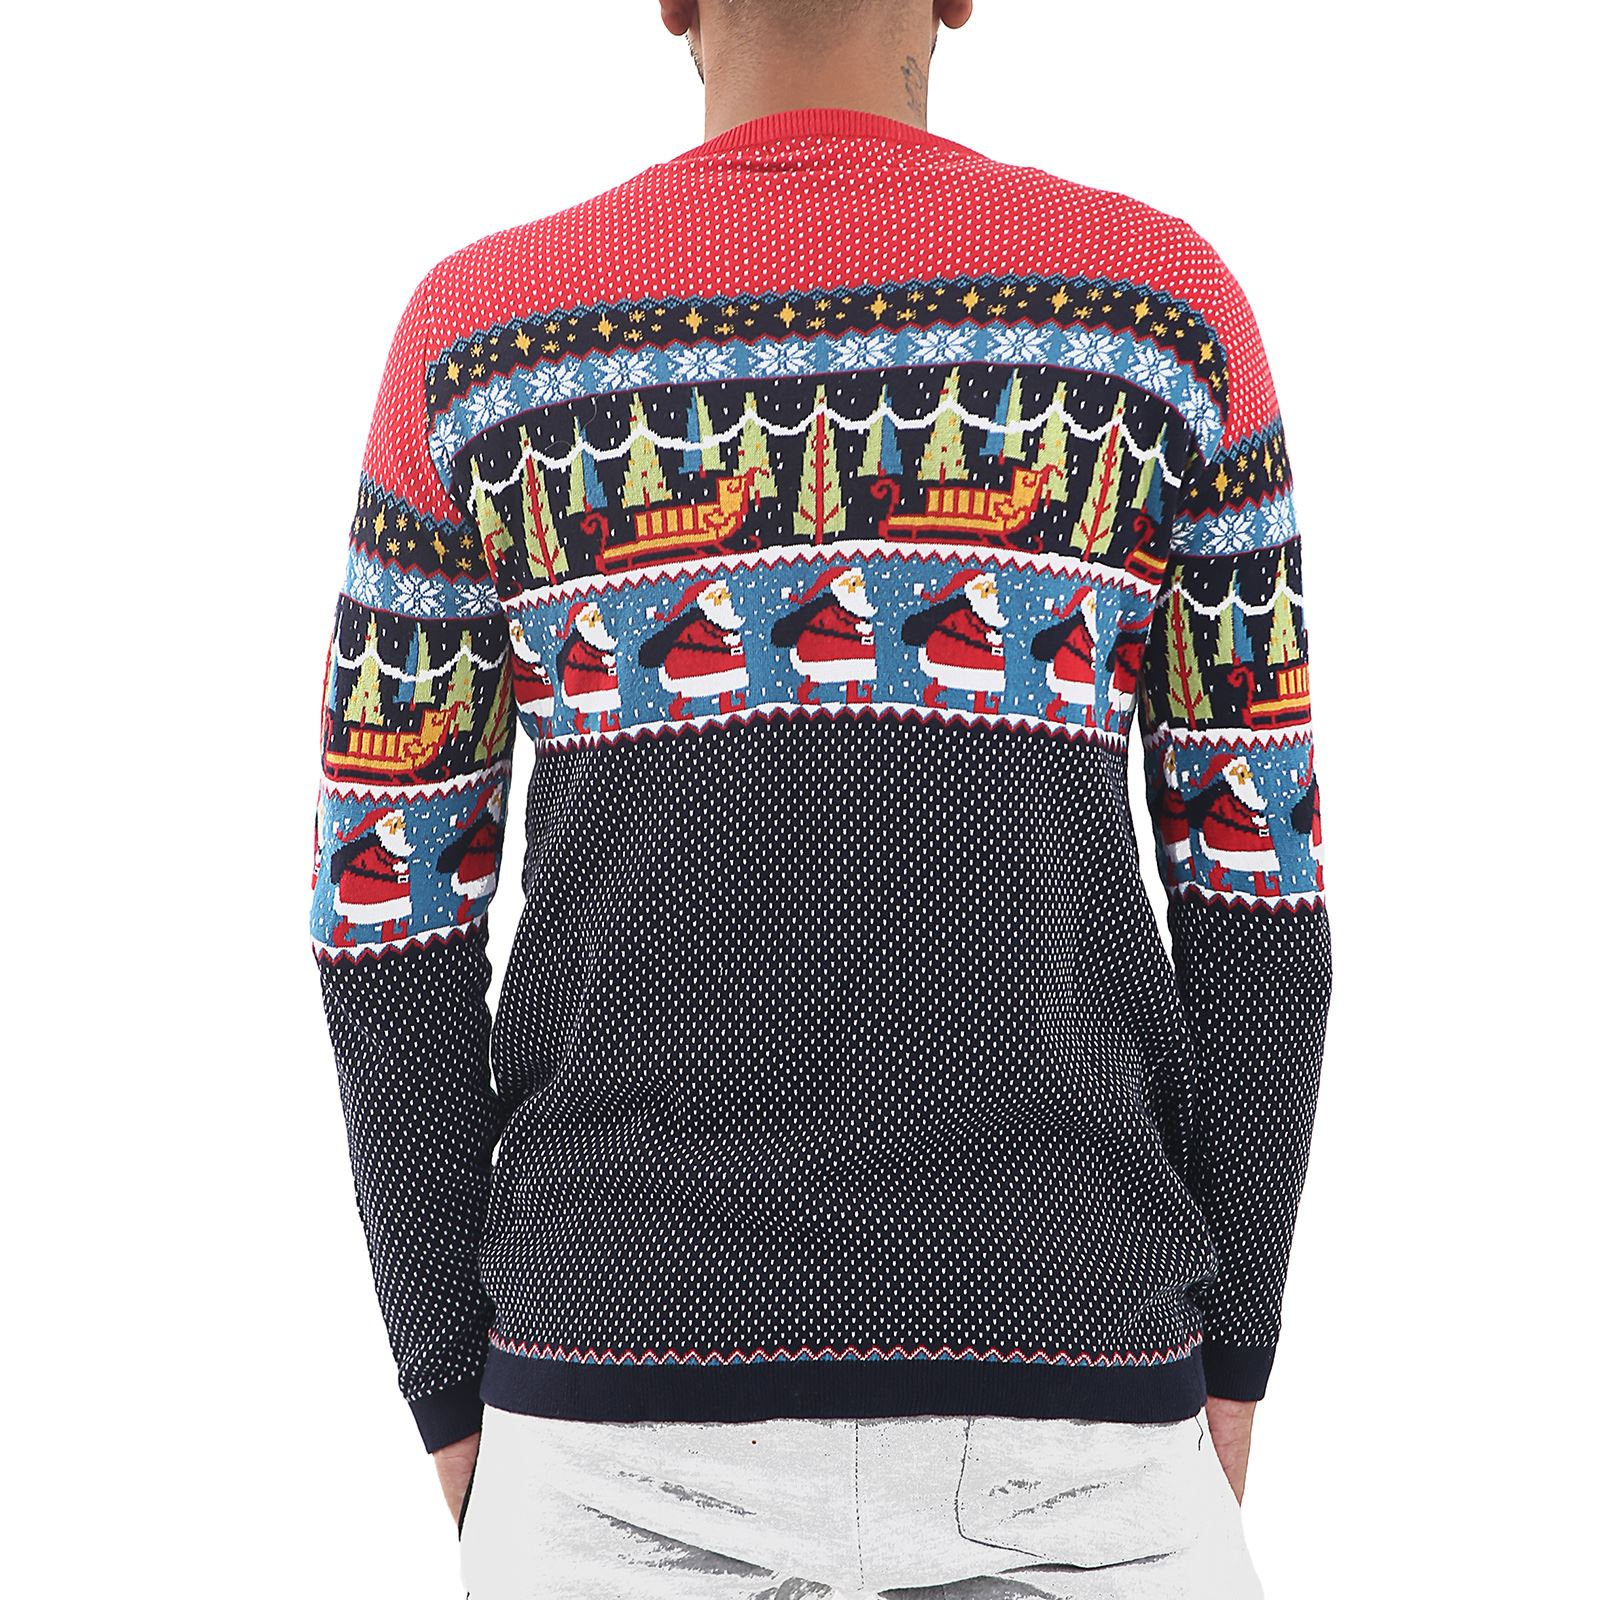 Mens-Ladies-Ex-Store-Matching-Christmas-Sweater-Jumper-Sweatshirt-Xmas-His-Hers thumbnail 13